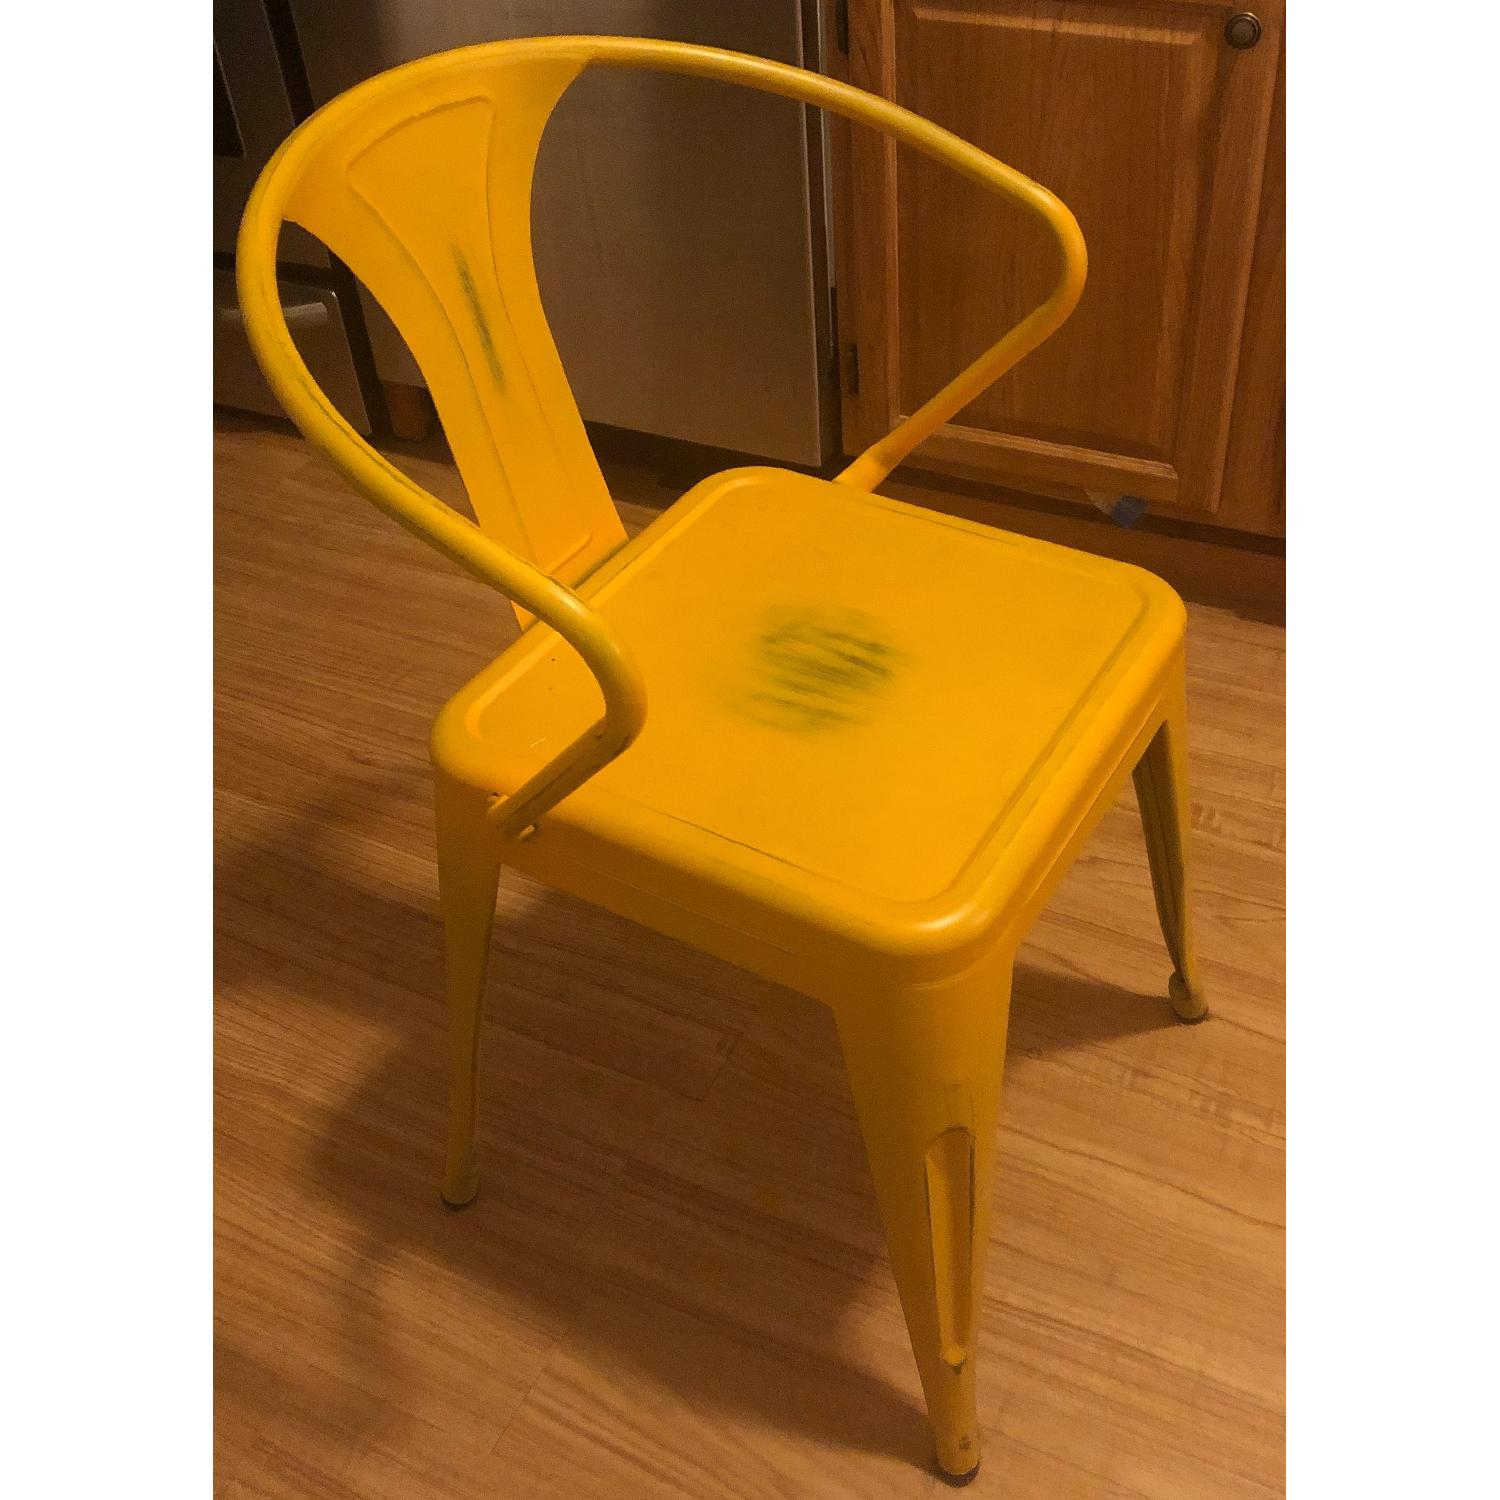 Modway Promenade Dining Chairs in Yellow-1